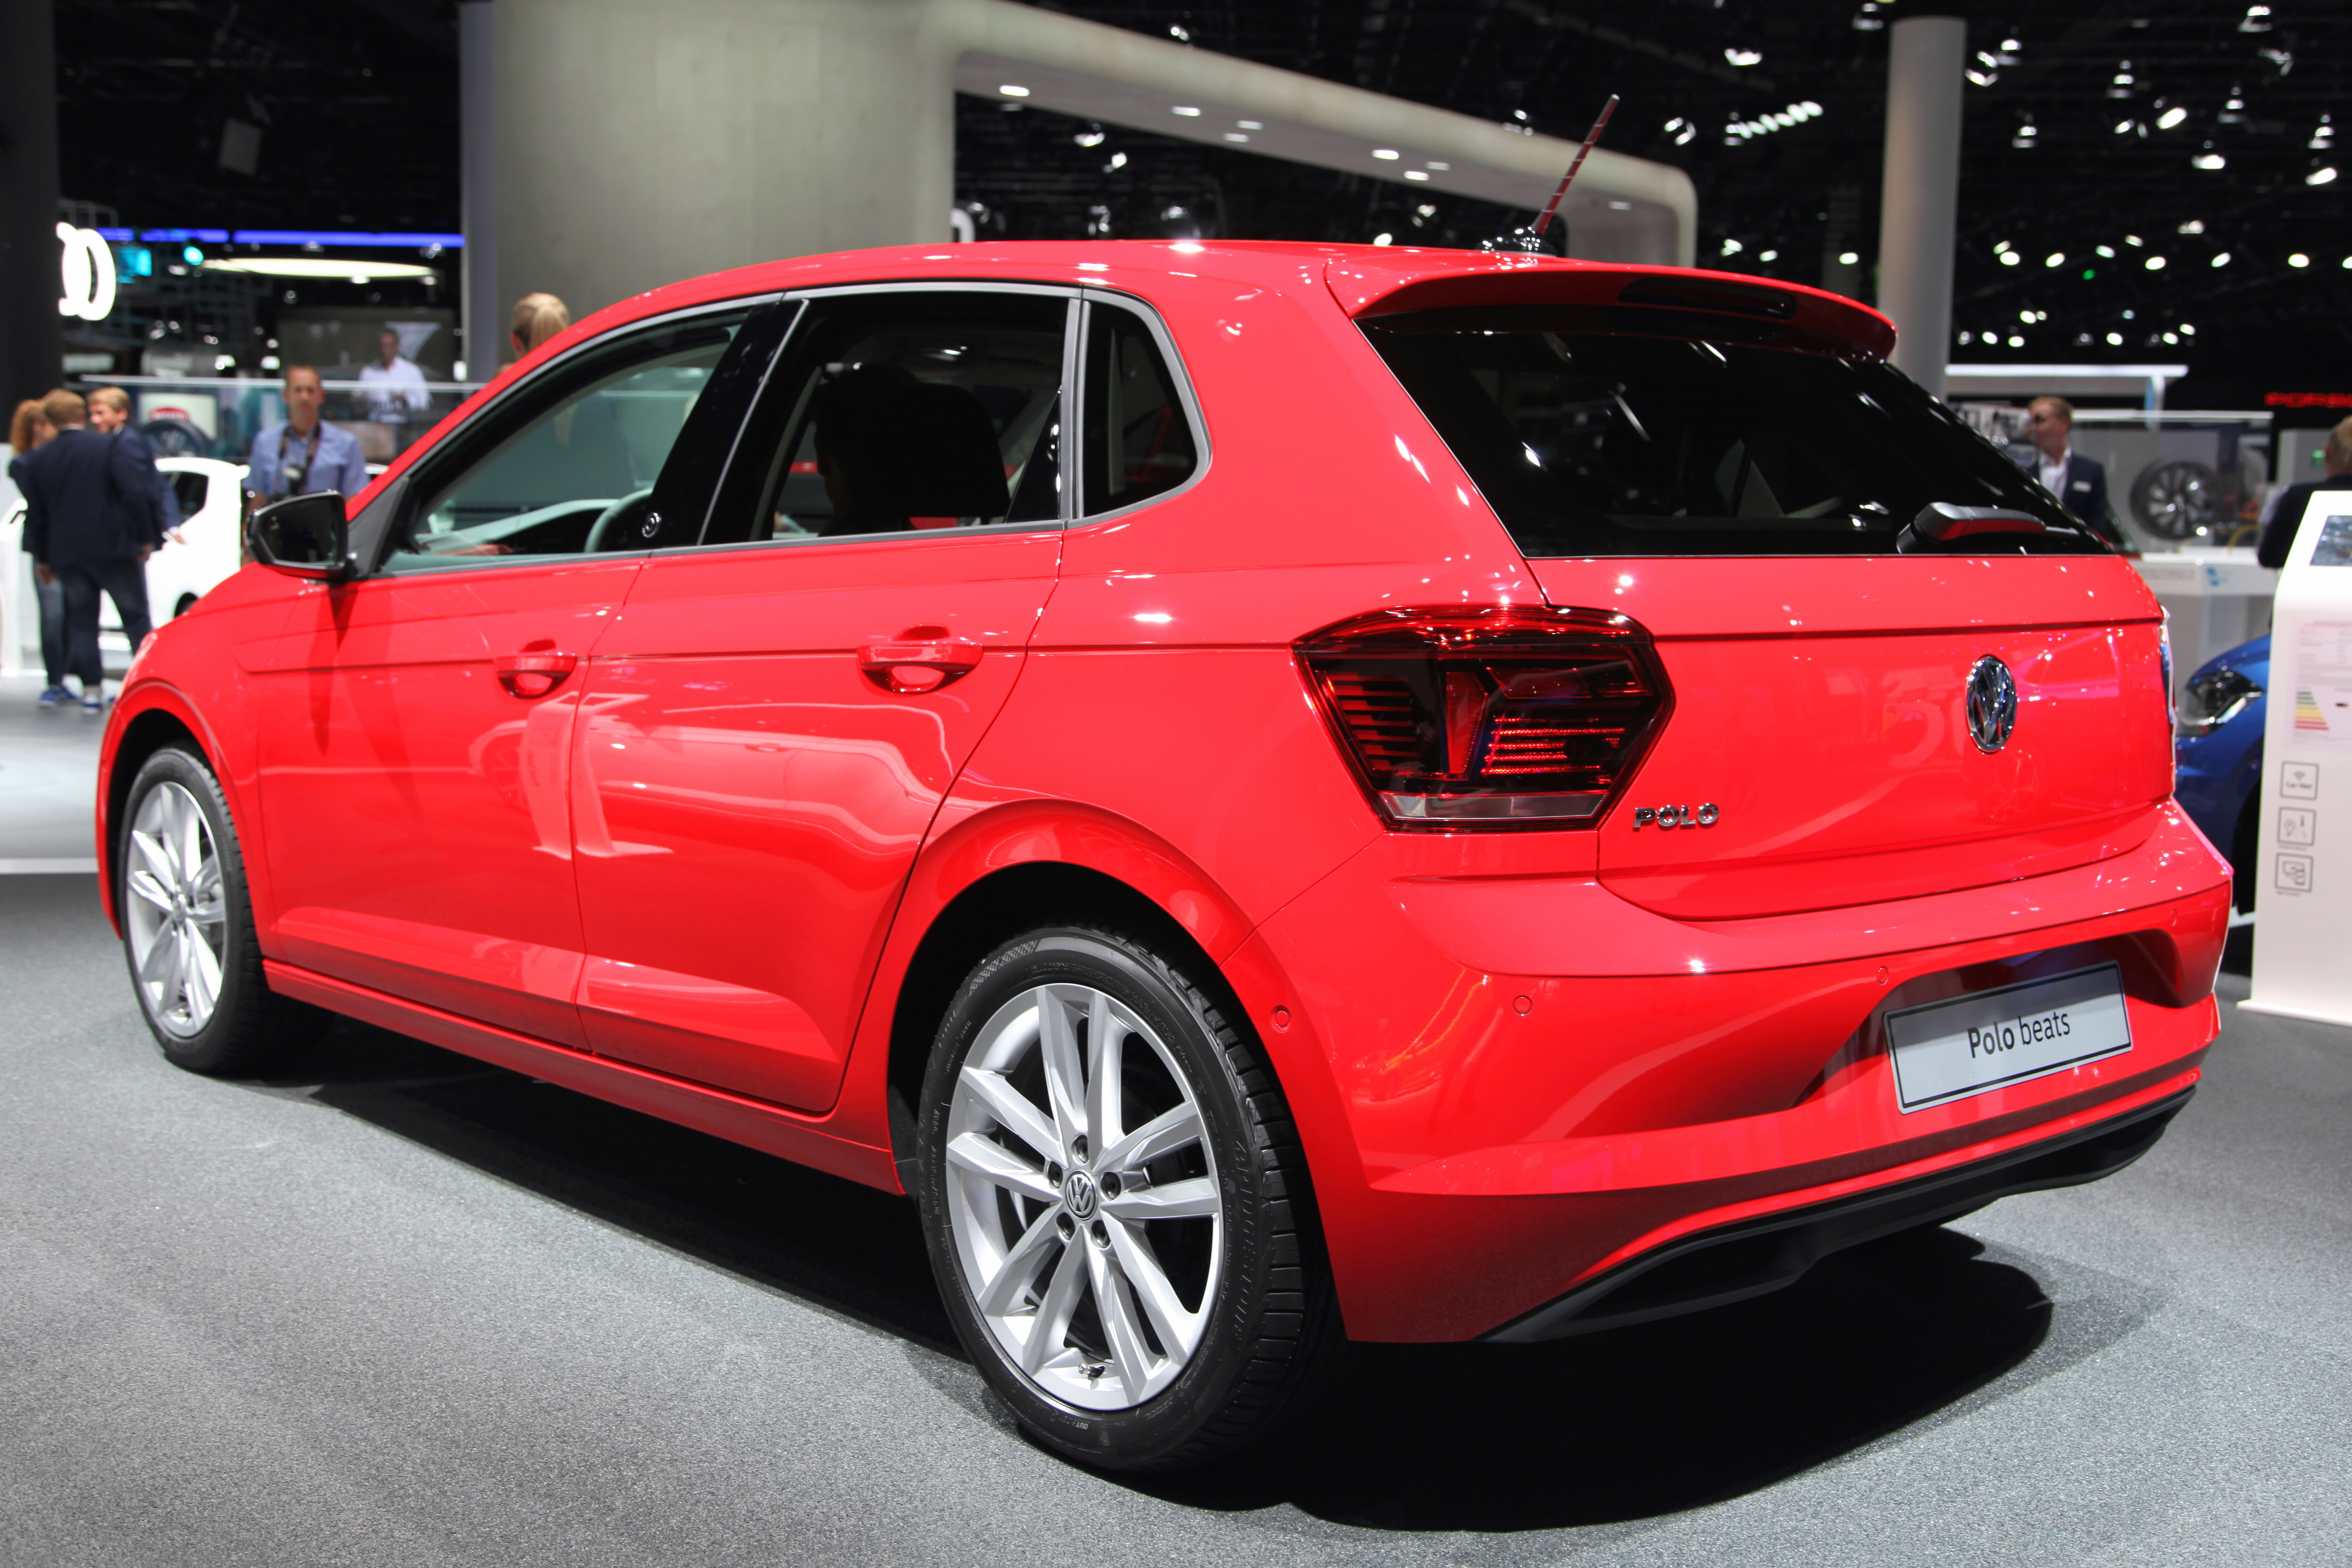 file vw polo beats back img wikimedia commons. Black Bedroom Furniture Sets. Home Design Ideas